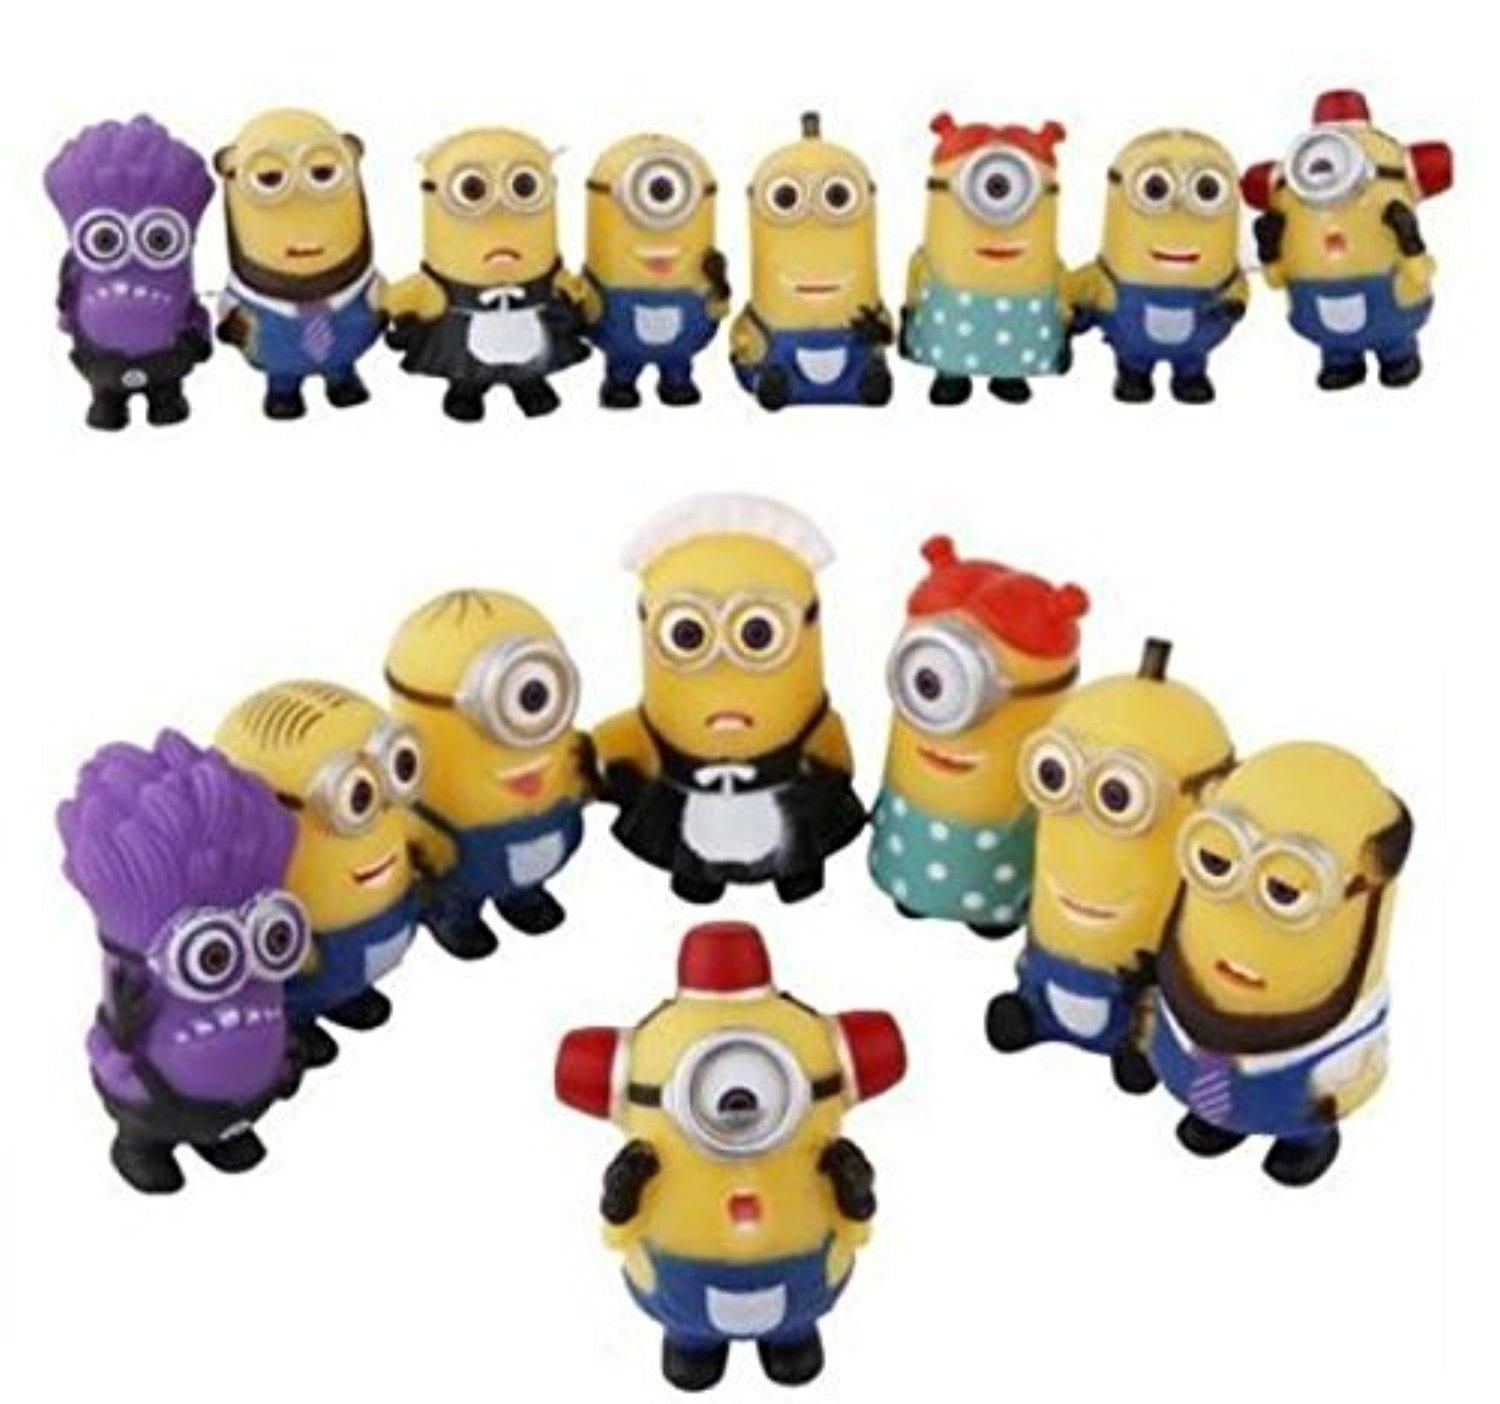 Despicable Me Minions Movie Action Figures Character Doll Toy Set of 8pcs 2.5/'/'